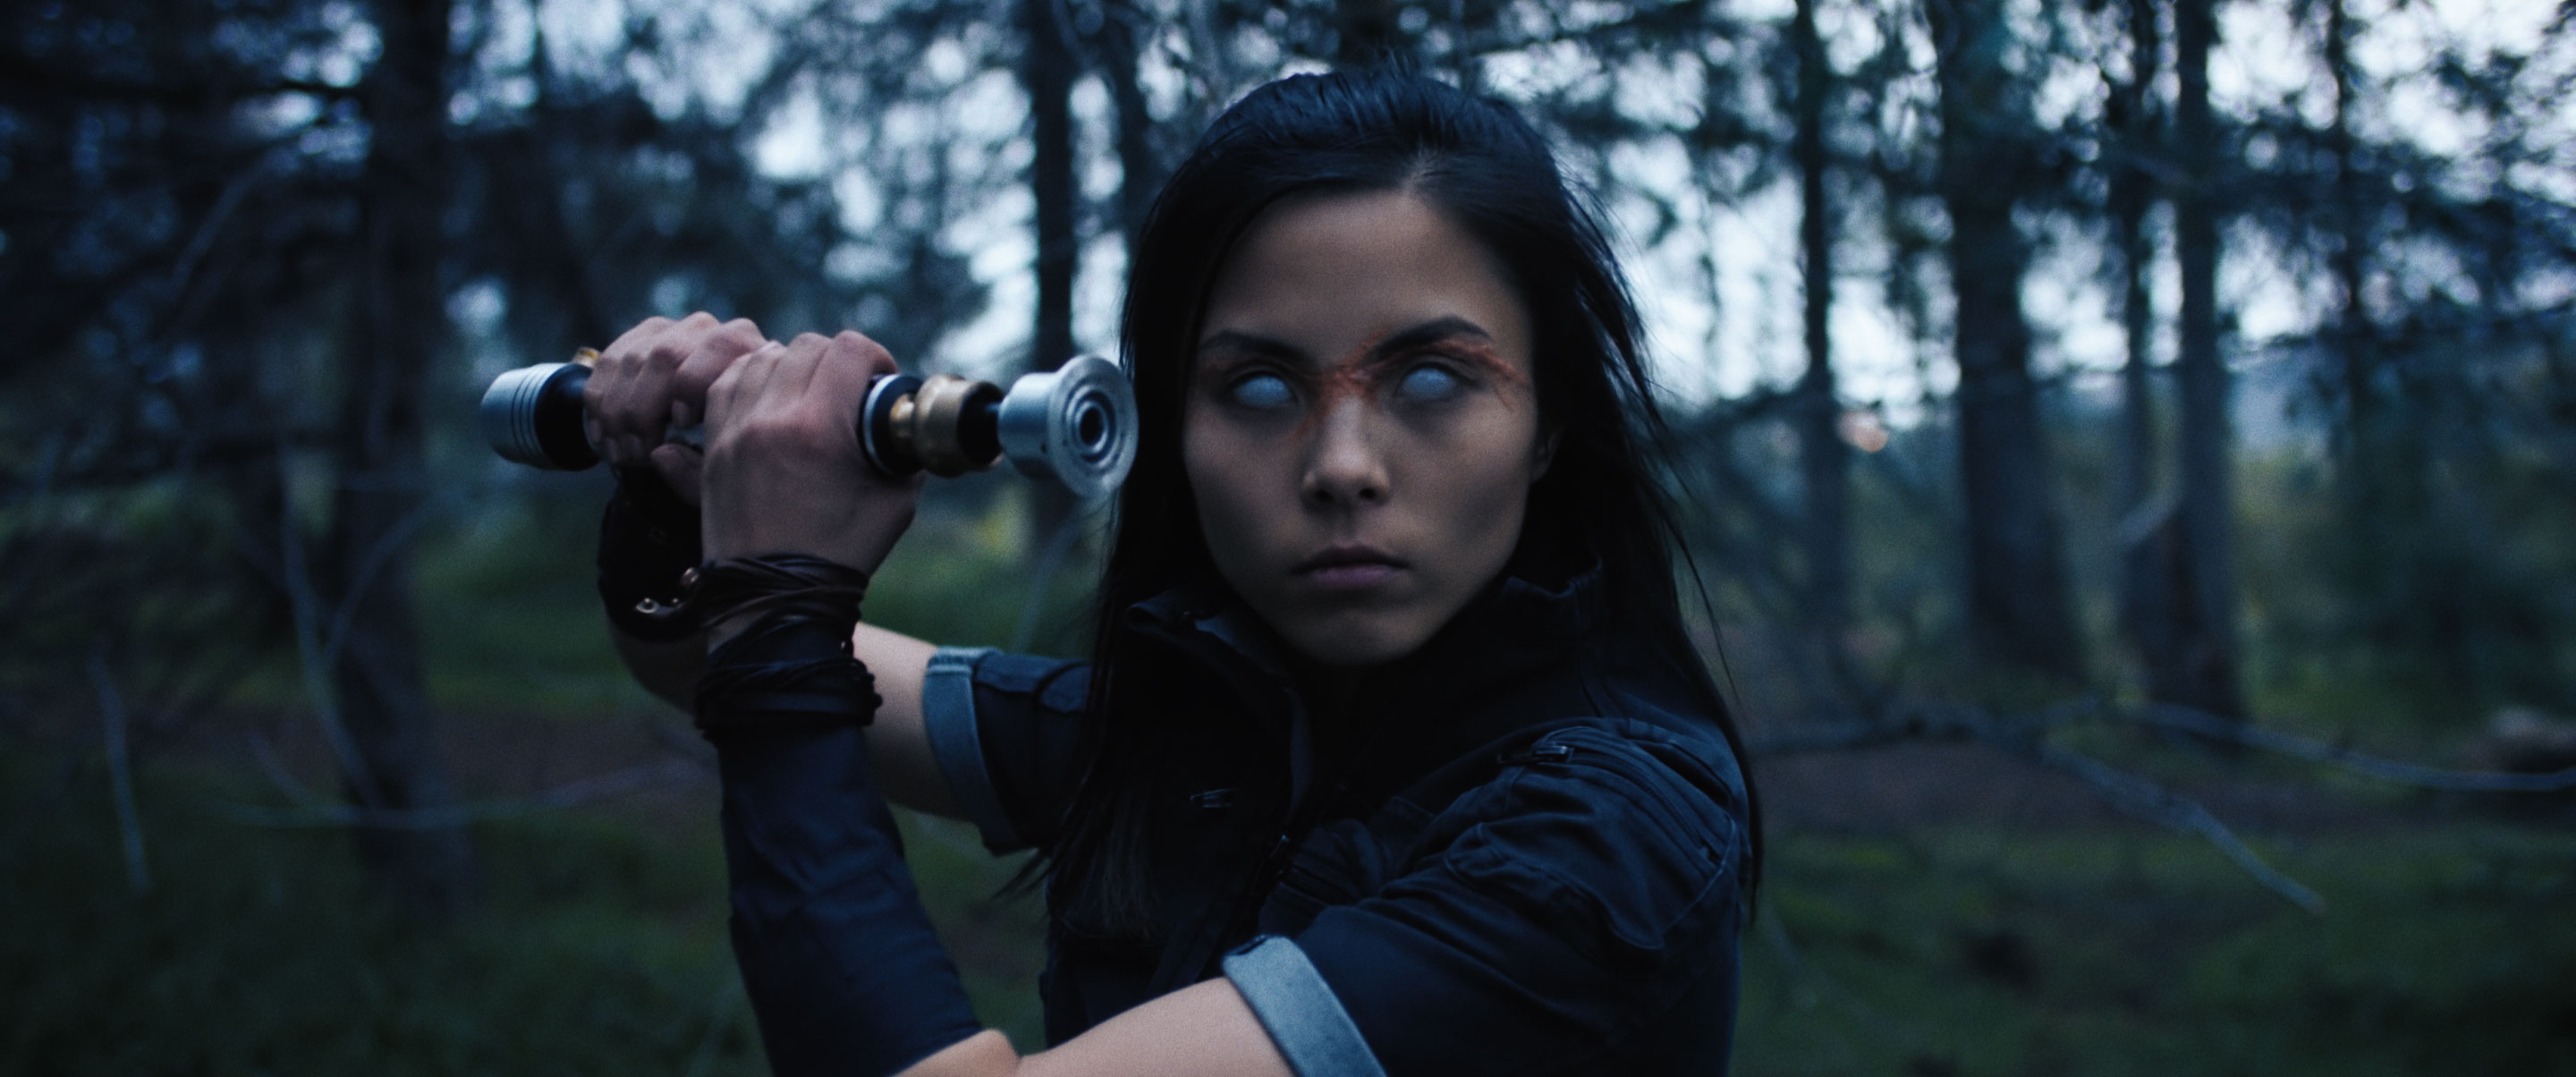 """In an image provided by the filmmakers, Anna Akana in the short """"Hoshino,"""" a fan-made Star Wars live-action short about a Jedi whose hubris costs her her eyesight. For the first time in half a decade, a year has gone by without a new """"Star Wars"""" film. But across YouTube, there are plenty of fan-made movies set in a galaxy far, far away. (Stephen Vitale via The New York Times) -- NO SALES; FOR EDITORIAL USE ONLY WITH STARWARS FAN FILMS ADV10 BY PHILBRICK FOR JAN. 10, 2021. ALL OTHER USE PROHIBITED. --"""